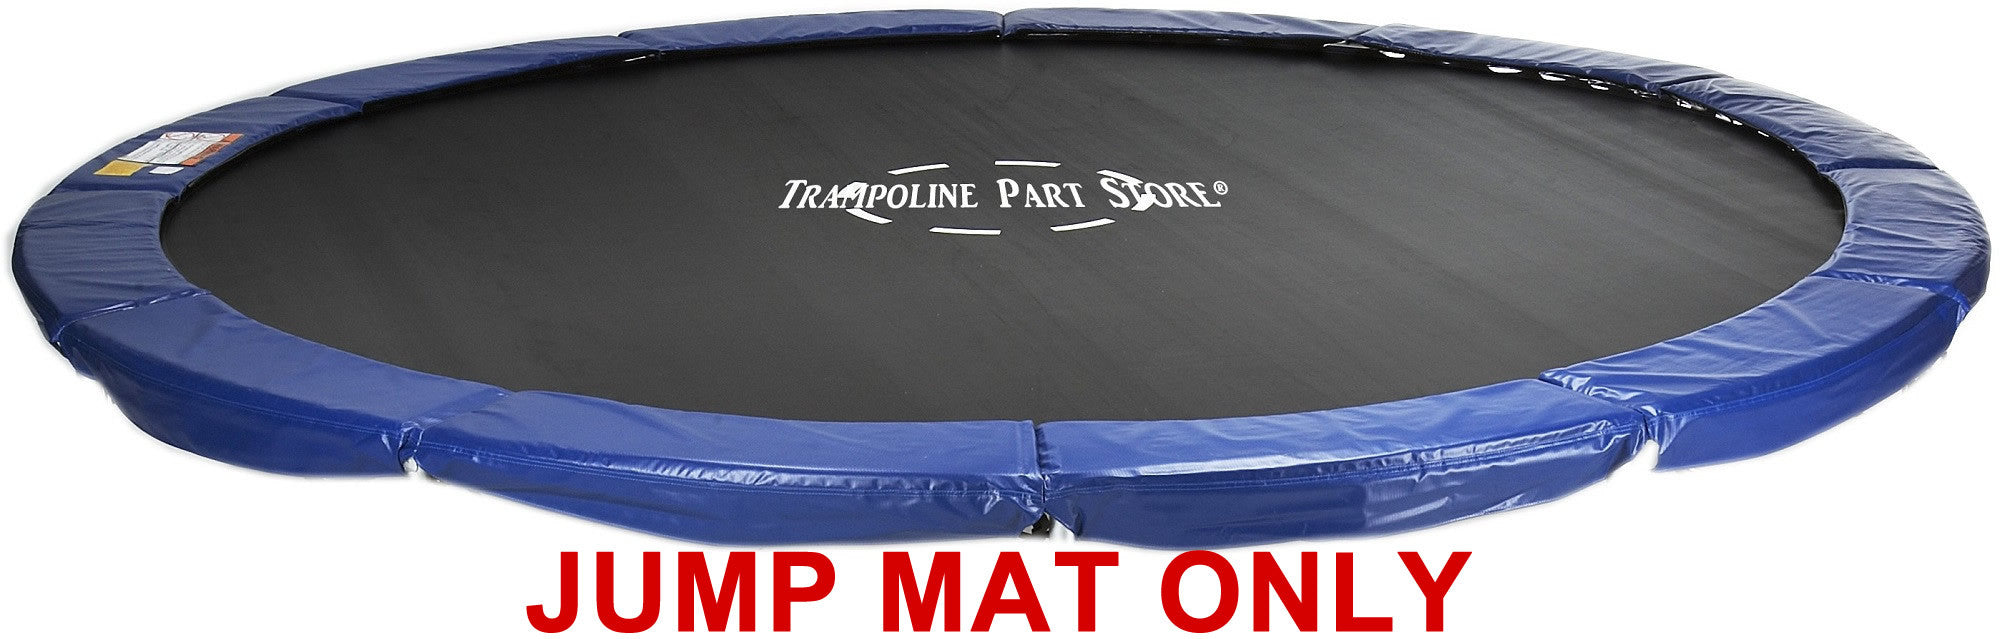 "14' with 84-Vrings Trampoline Replacement Jumping Mat ""ASTM Safety Approved"""